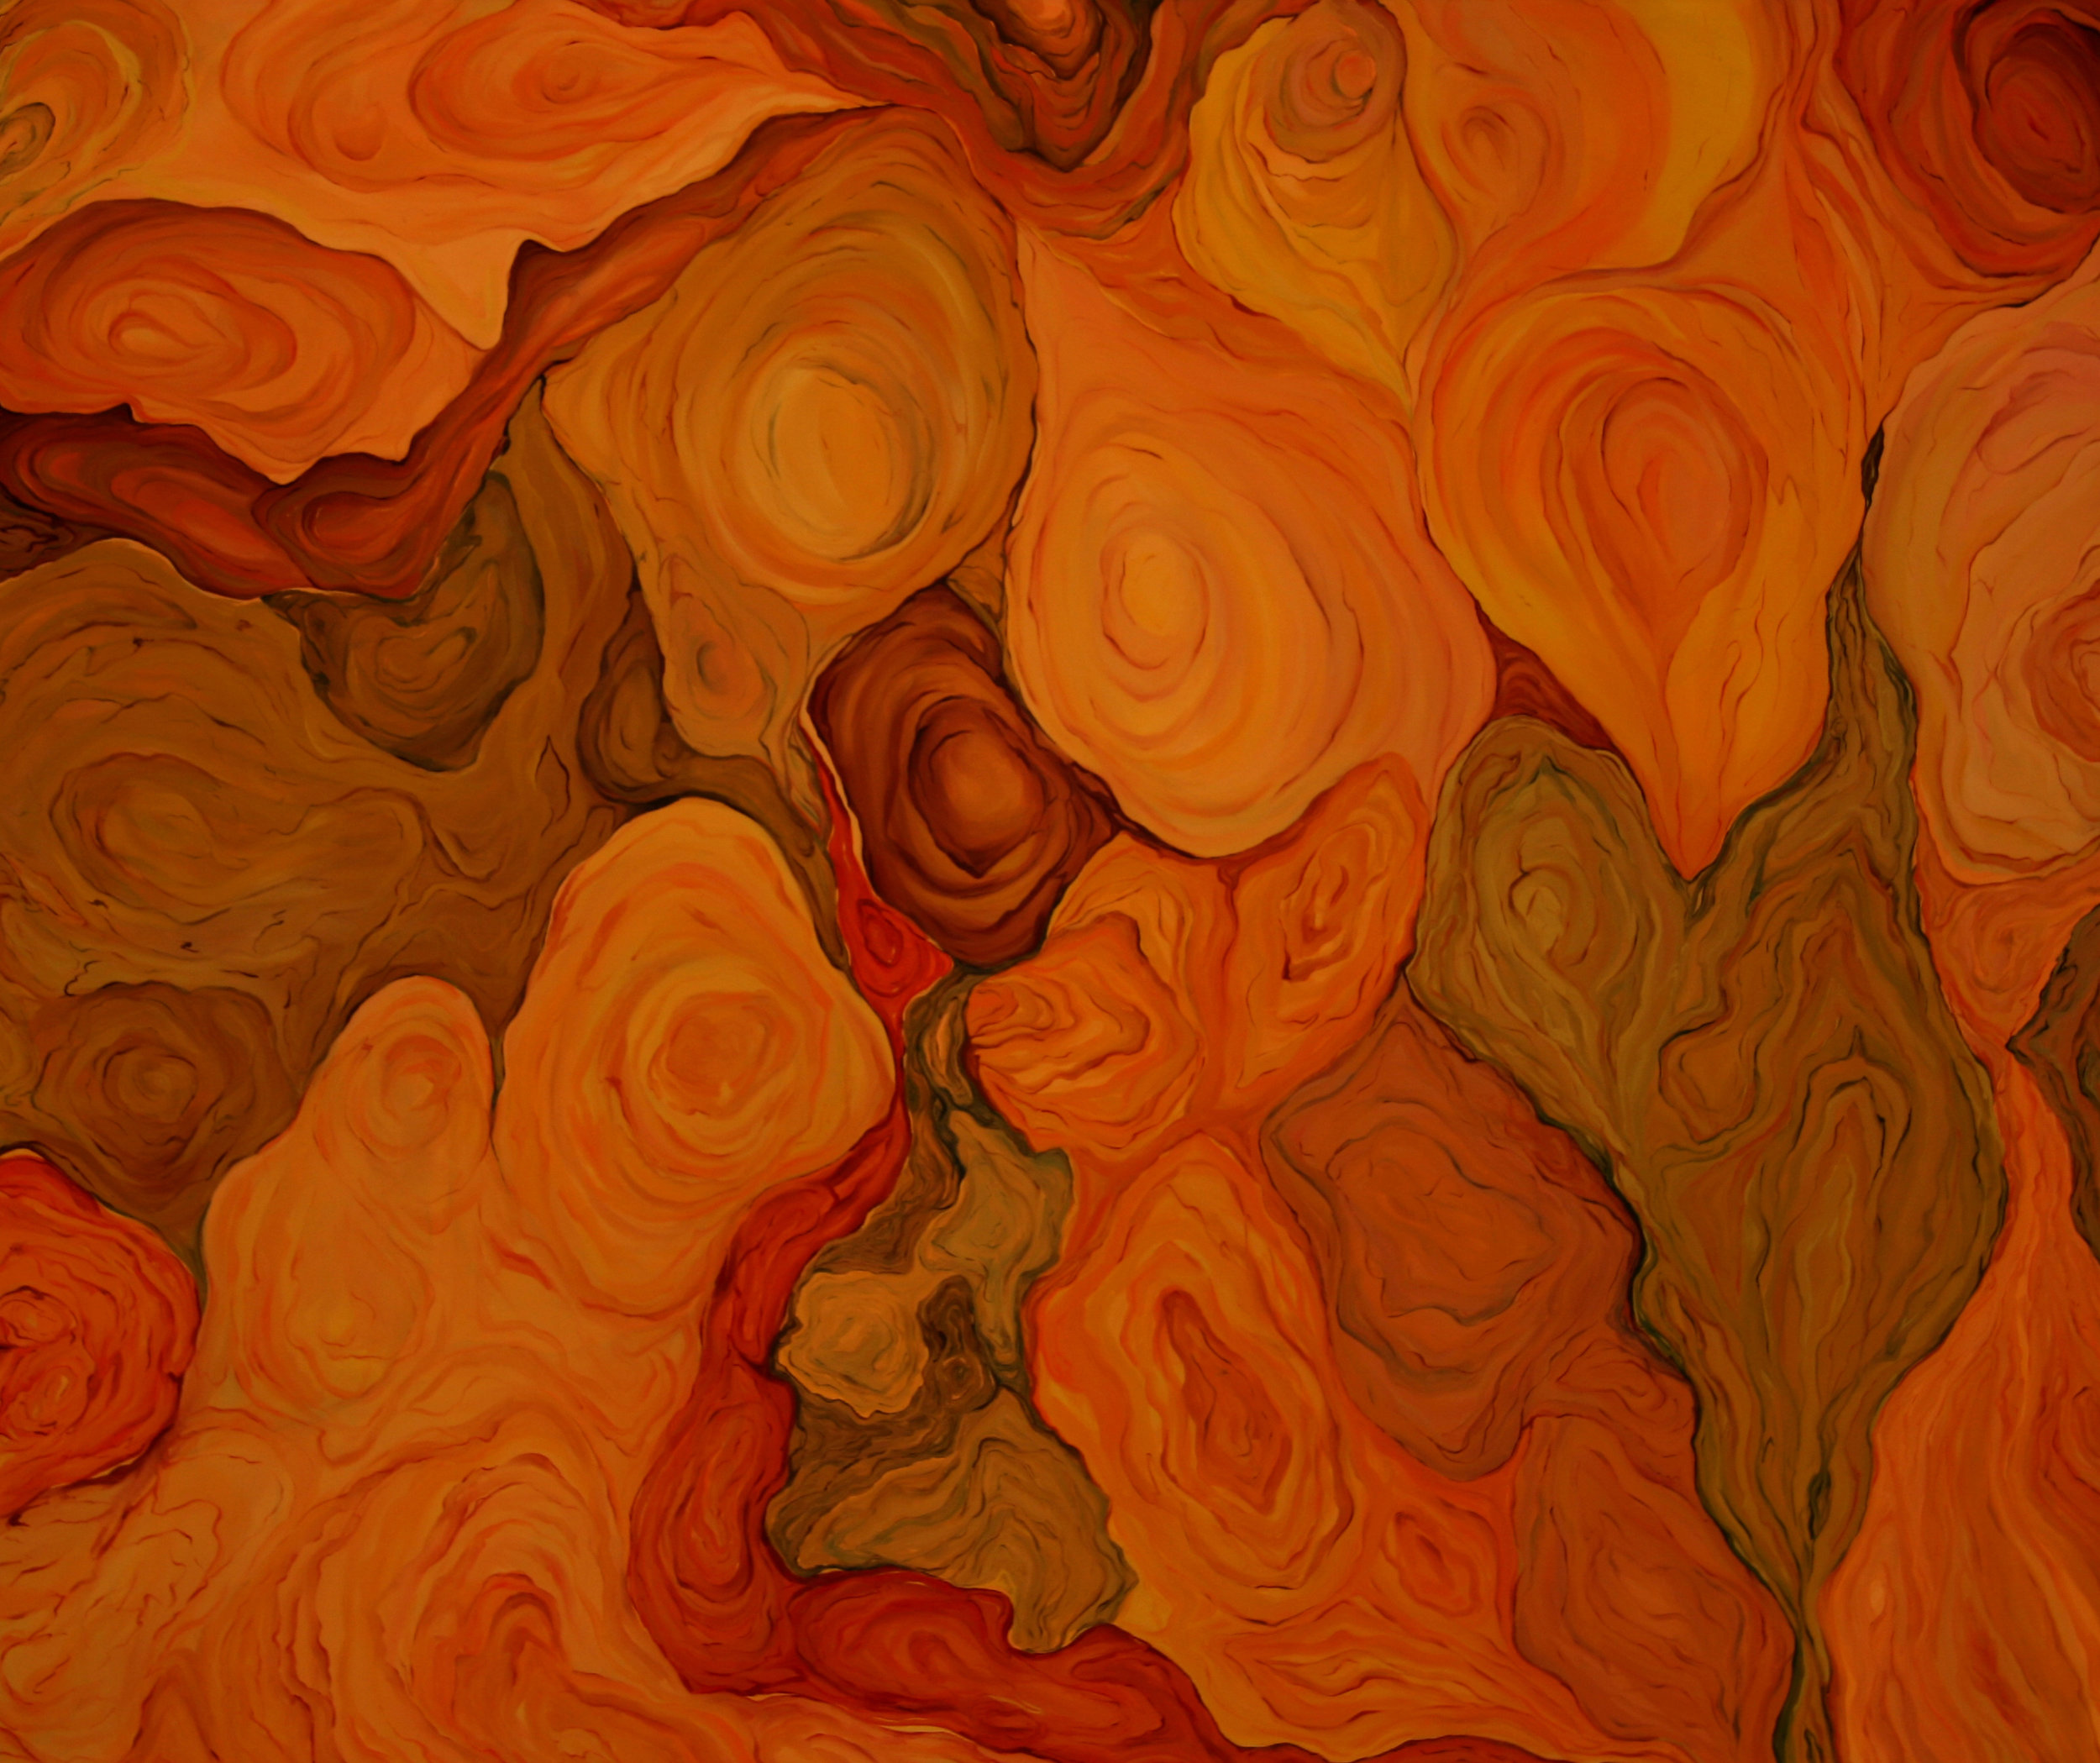 oil on canvas, 180 x 220 cm. 2008